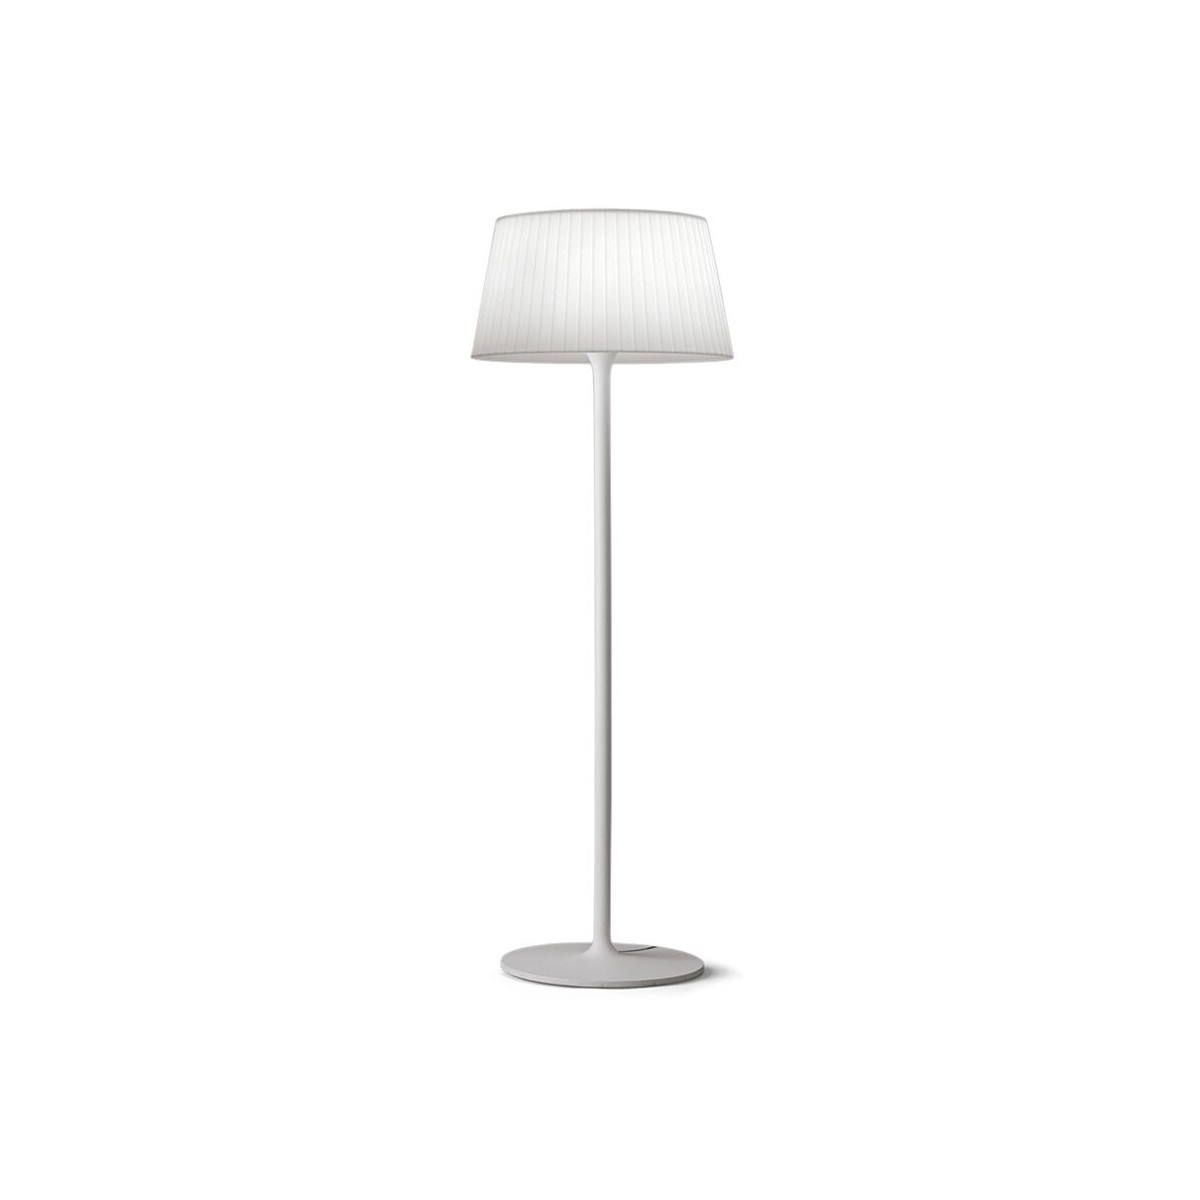 Outdoor Floor Lamp by Vibia | 4030-03 for Vibia Outdoor Floor Lamp  584dqh